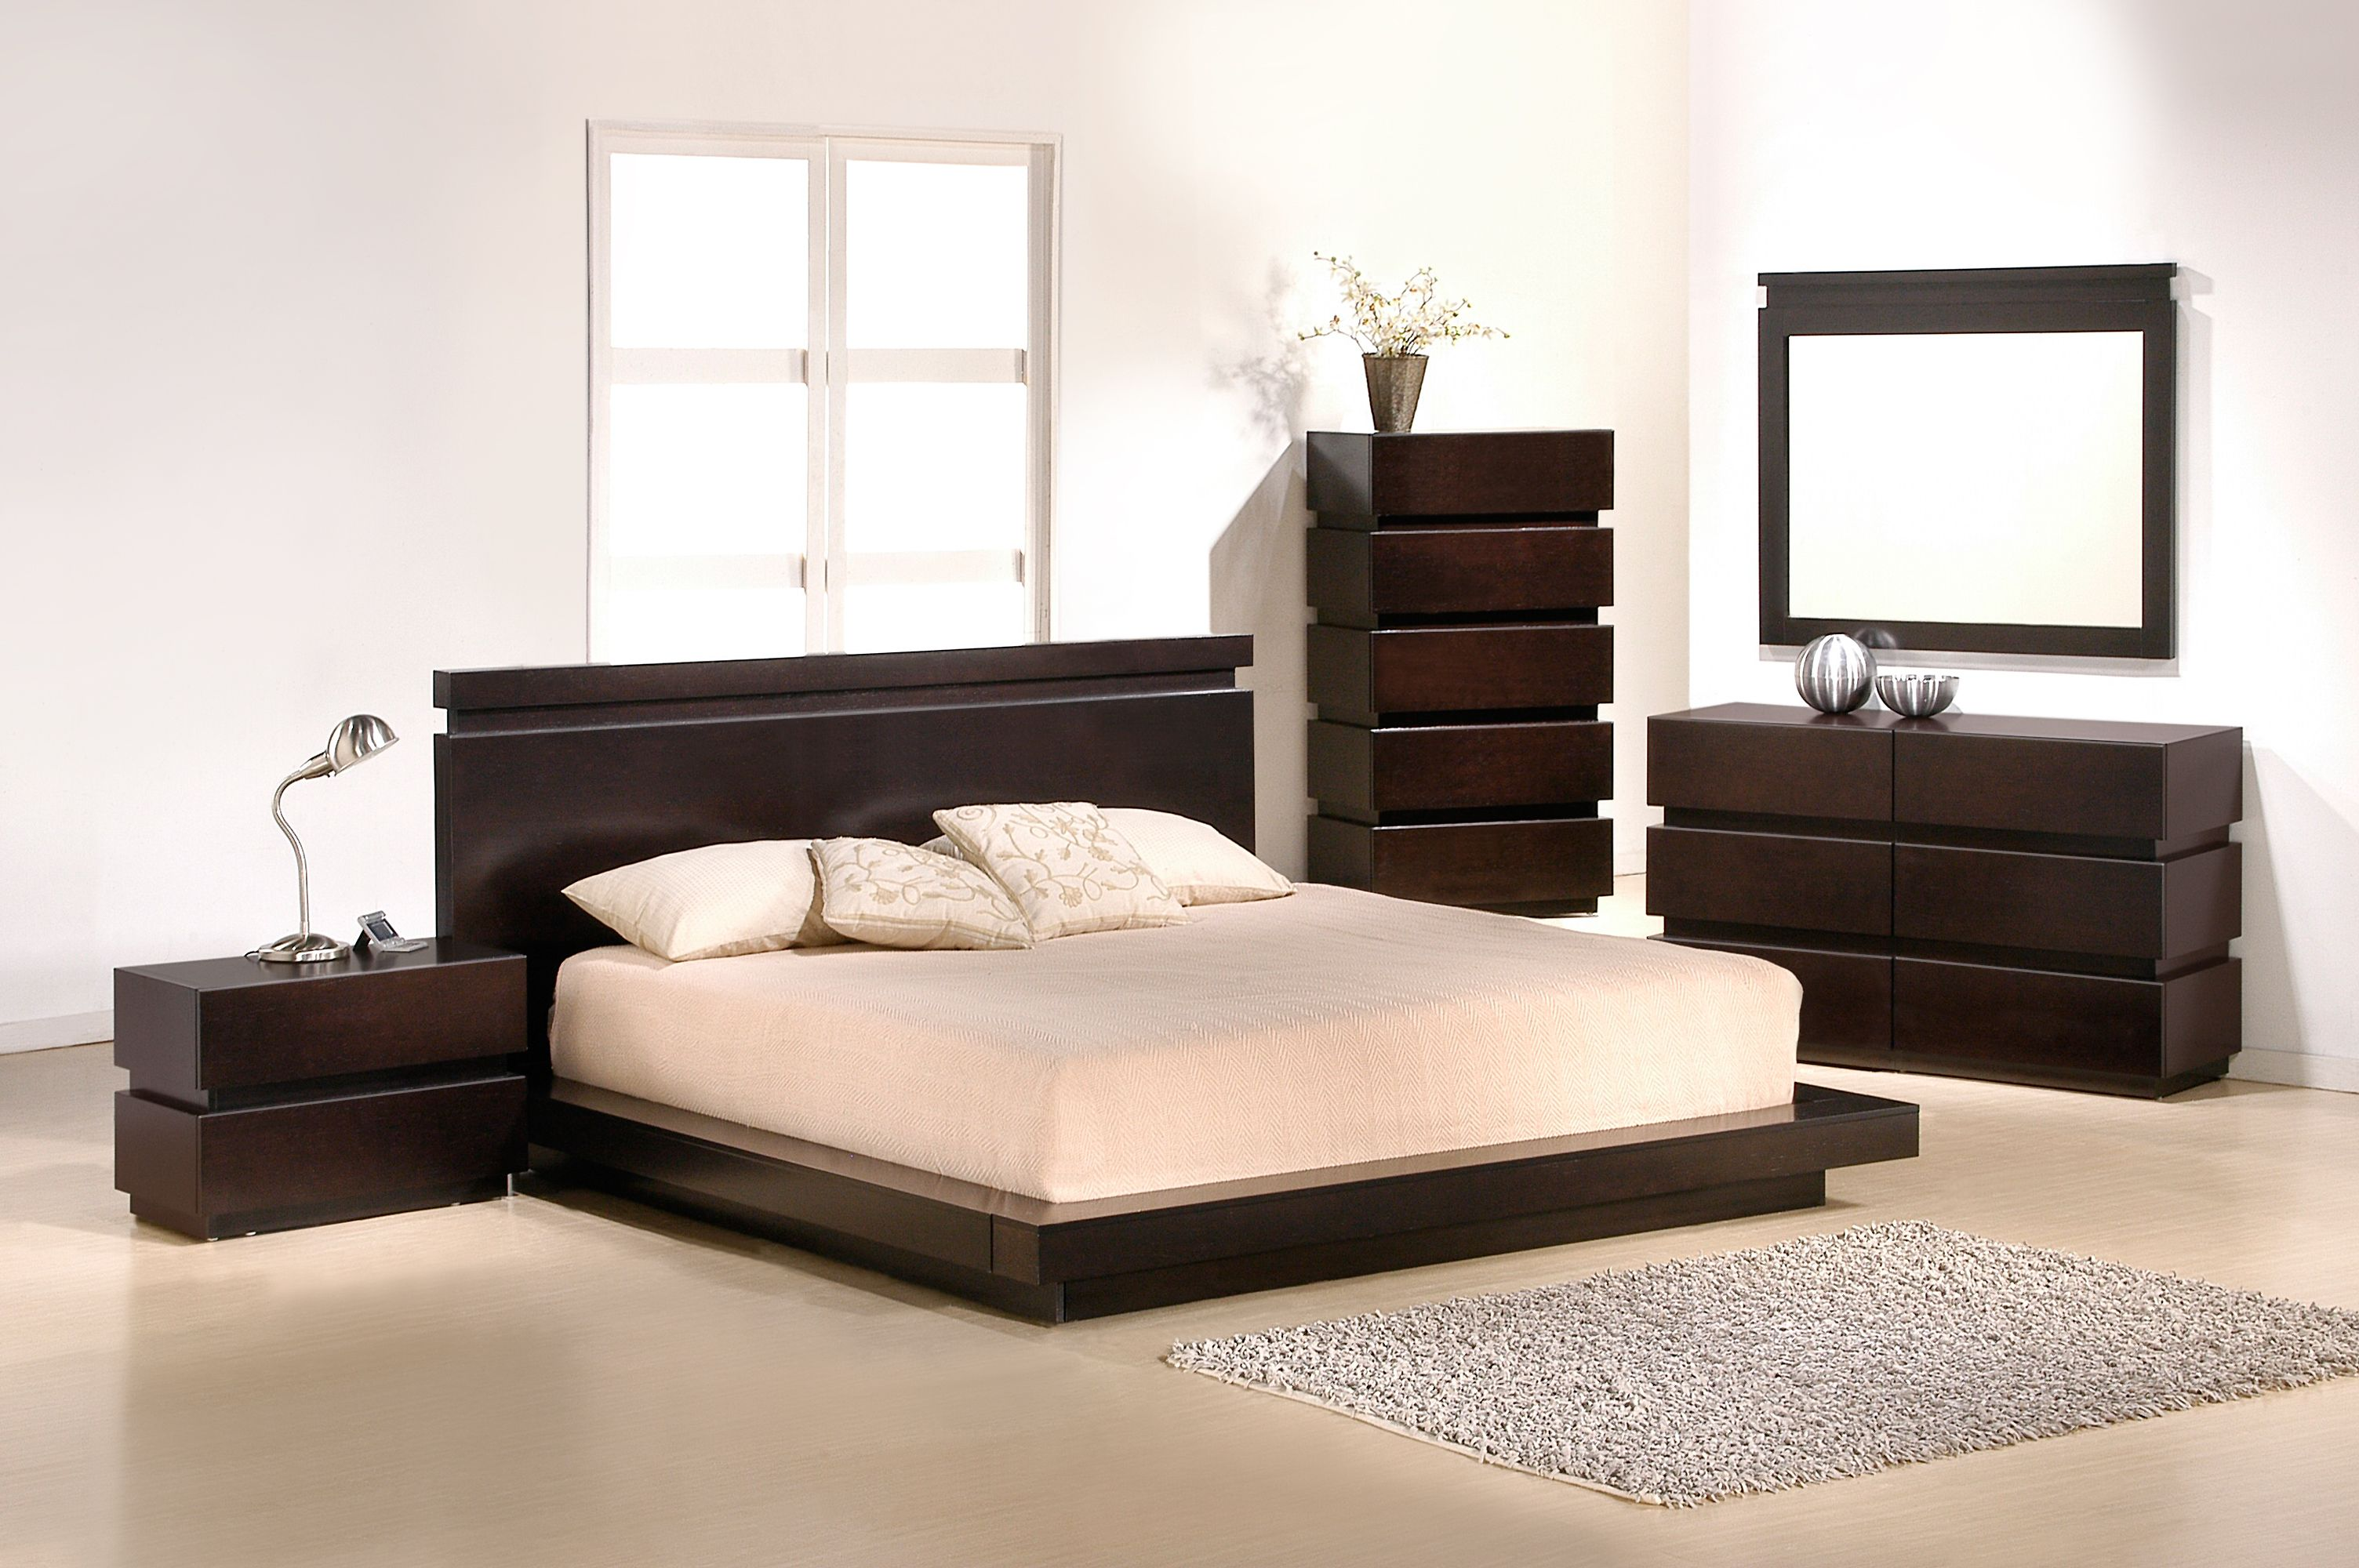 JNM KNOTCH Modern Low Platform Brown Finish Bedroom Set Knotch Bedroom  offers alluring designs and colors of the modern bedroom  Furniture  presented in. FurniPlanet com   Buy Knotch  Queen Size Bed  at Discount Price at